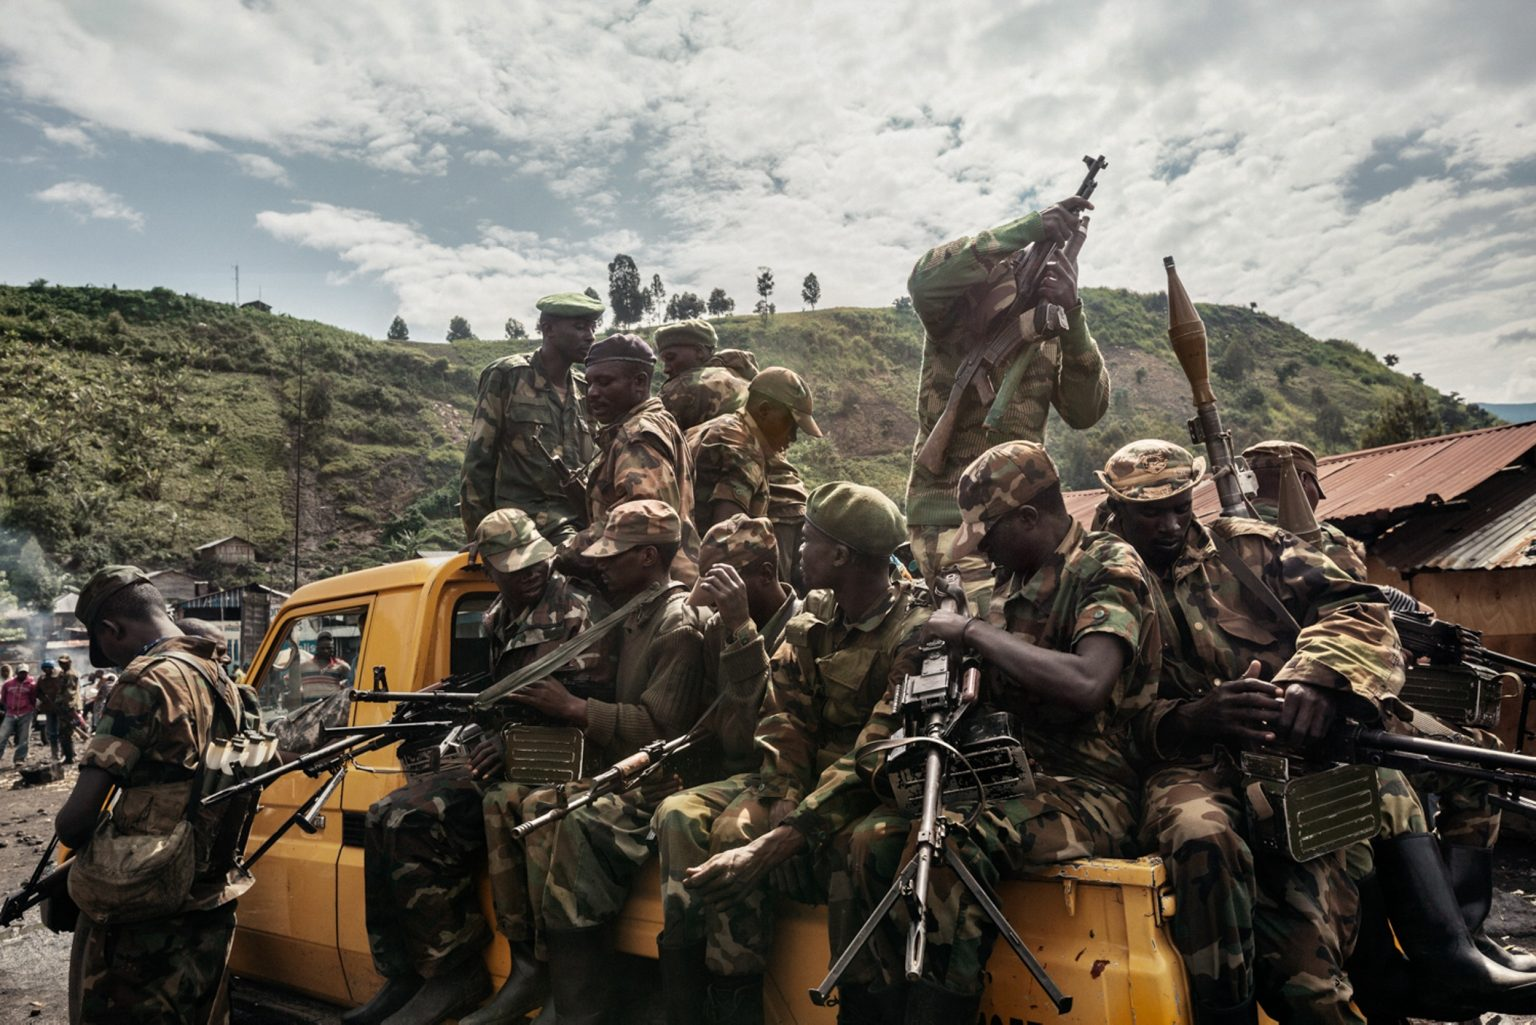 africa-democratic-republic-of-congo-north-kivu-goma-30-11-2012-m23-rebels-congregate-outside-of-sake-25km-west-of-goma-preparing-to-march-back-to-goma-following-orders-to-withdraw-from-the-city